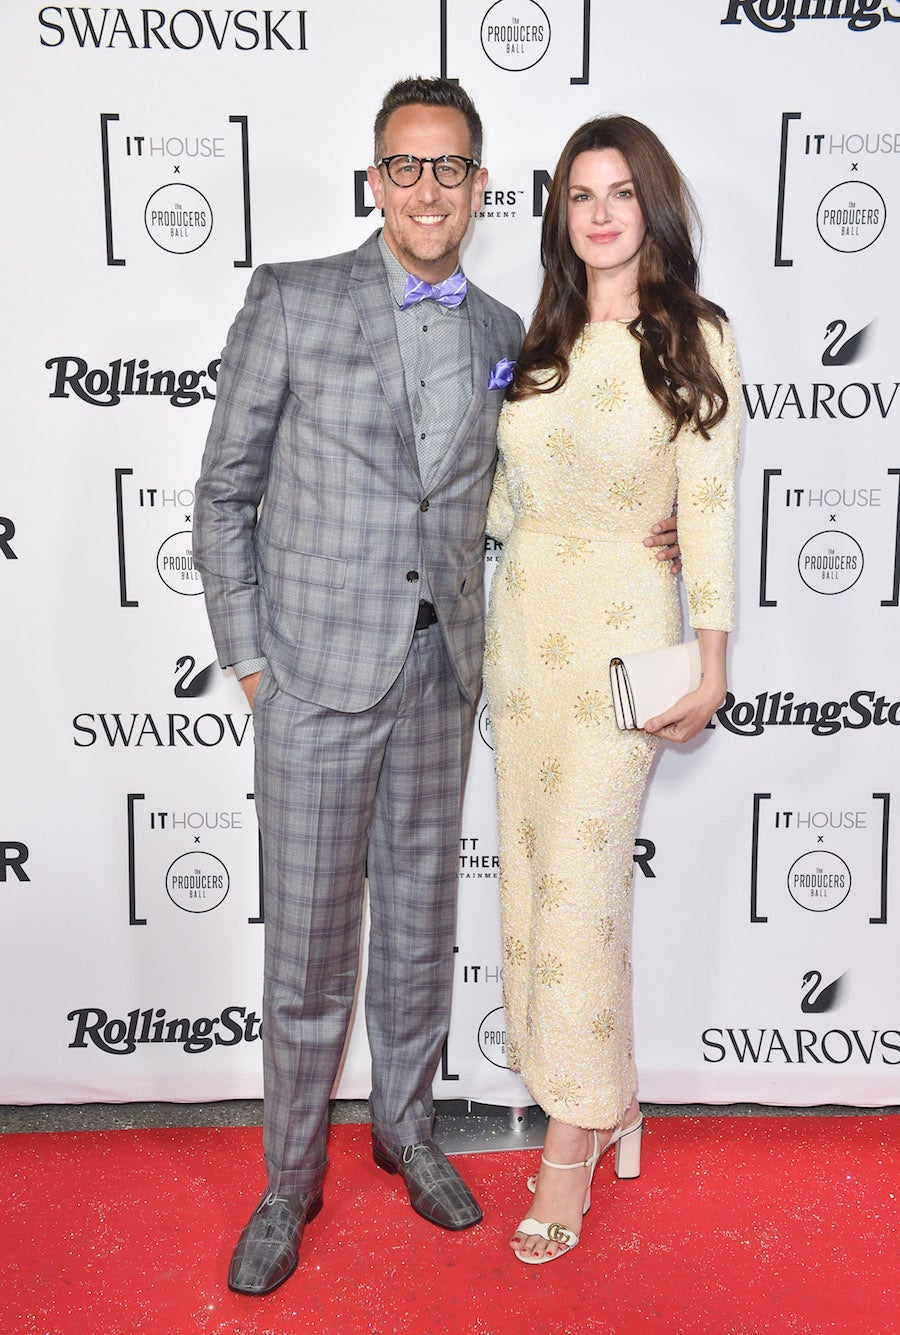 Noah Cappe and Kerri West at IT House Producers Ball TIFF 2018 | SWAGGER Magazine